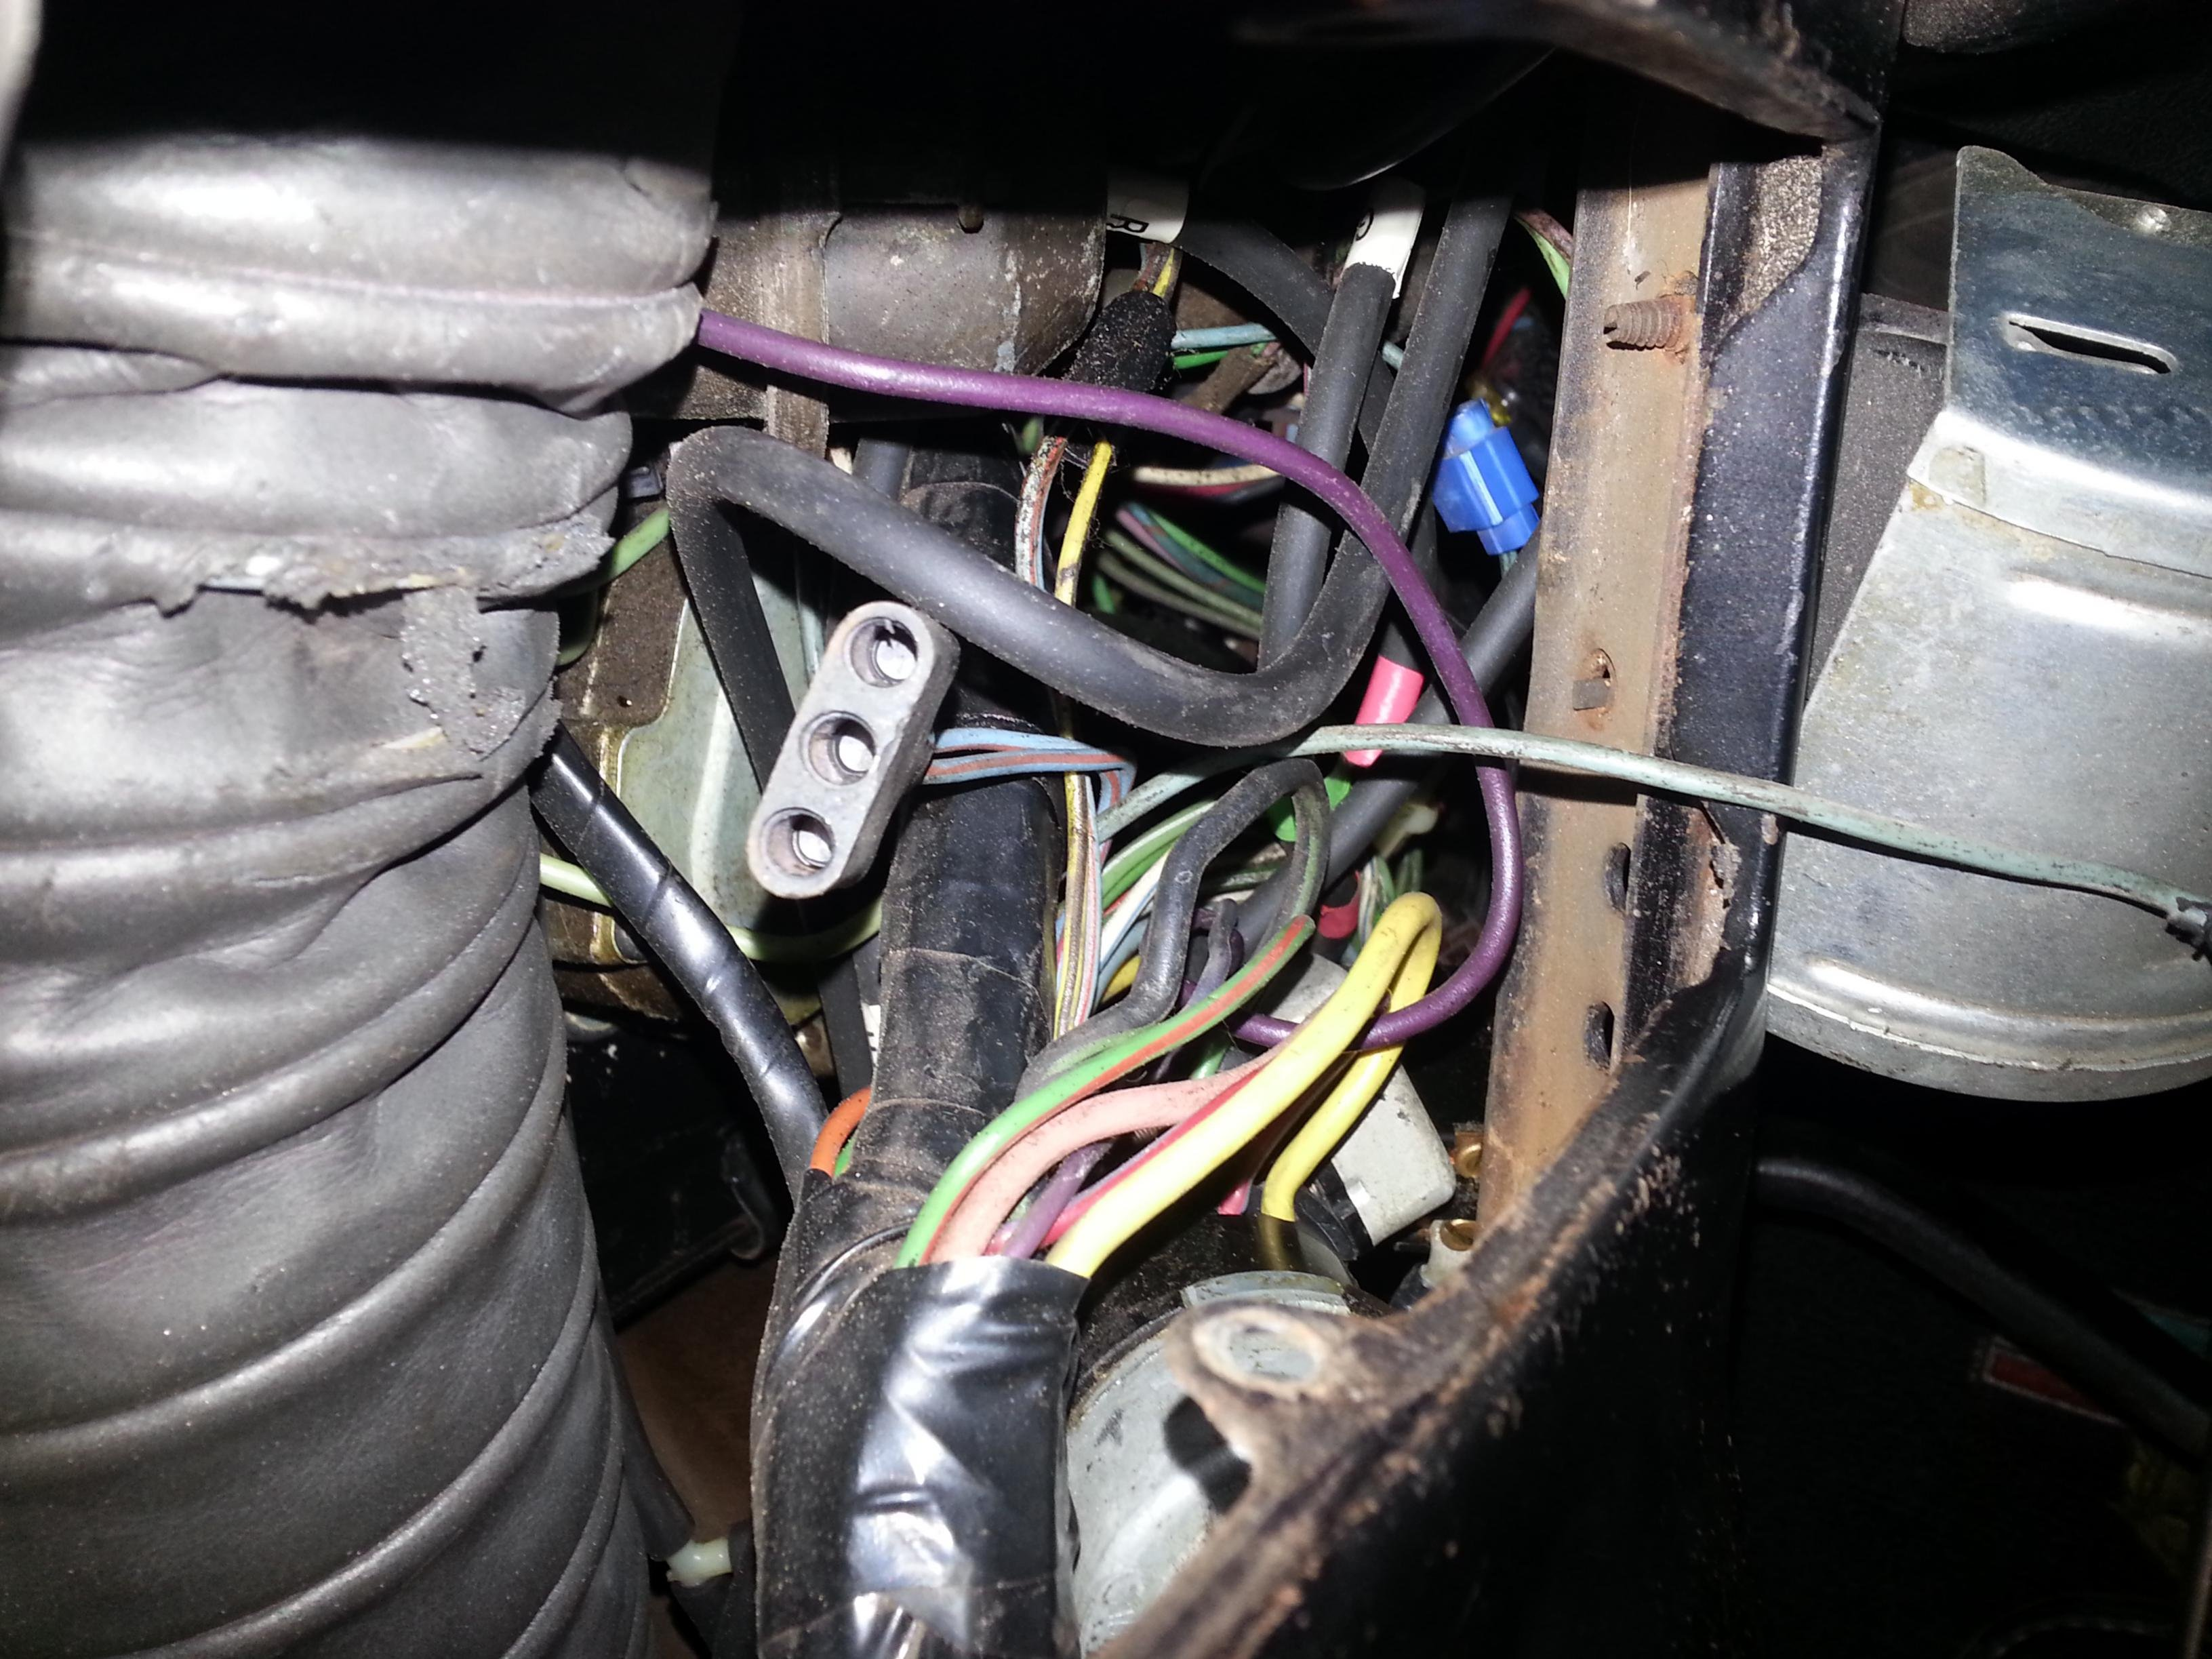 351082d1401405435 ways bypass resistor wire 20140529_190721 ways to bypass resistor wire? ford mustang forum External Resistor Coil Wiring at gsmx.co